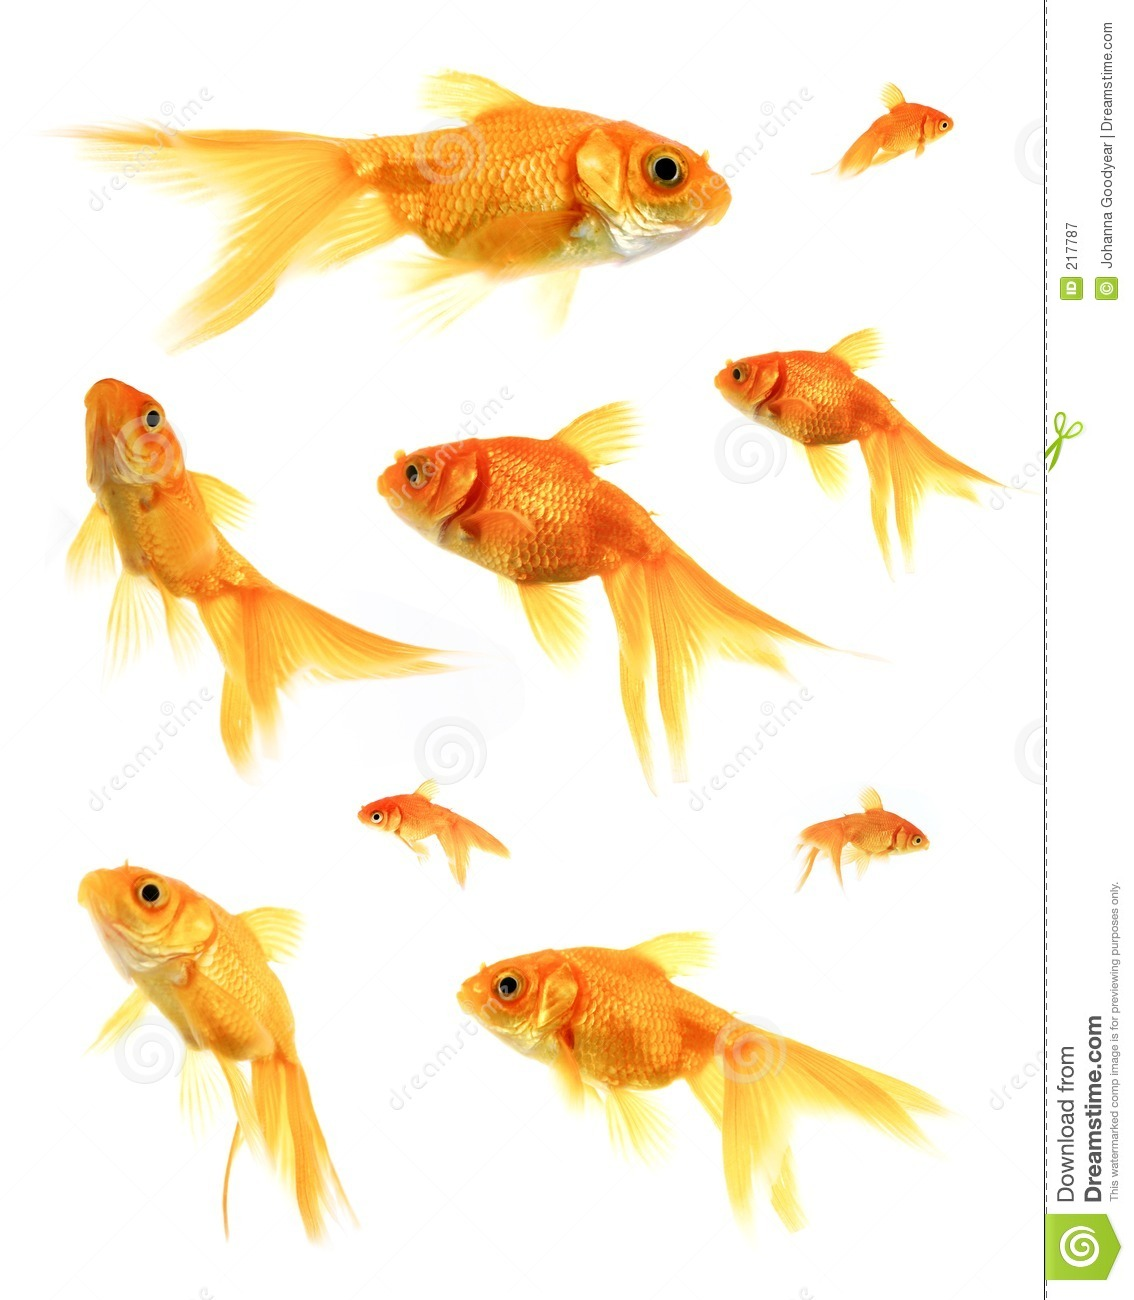 Goldfish Royalty Free Stock Photography - Image: 217787